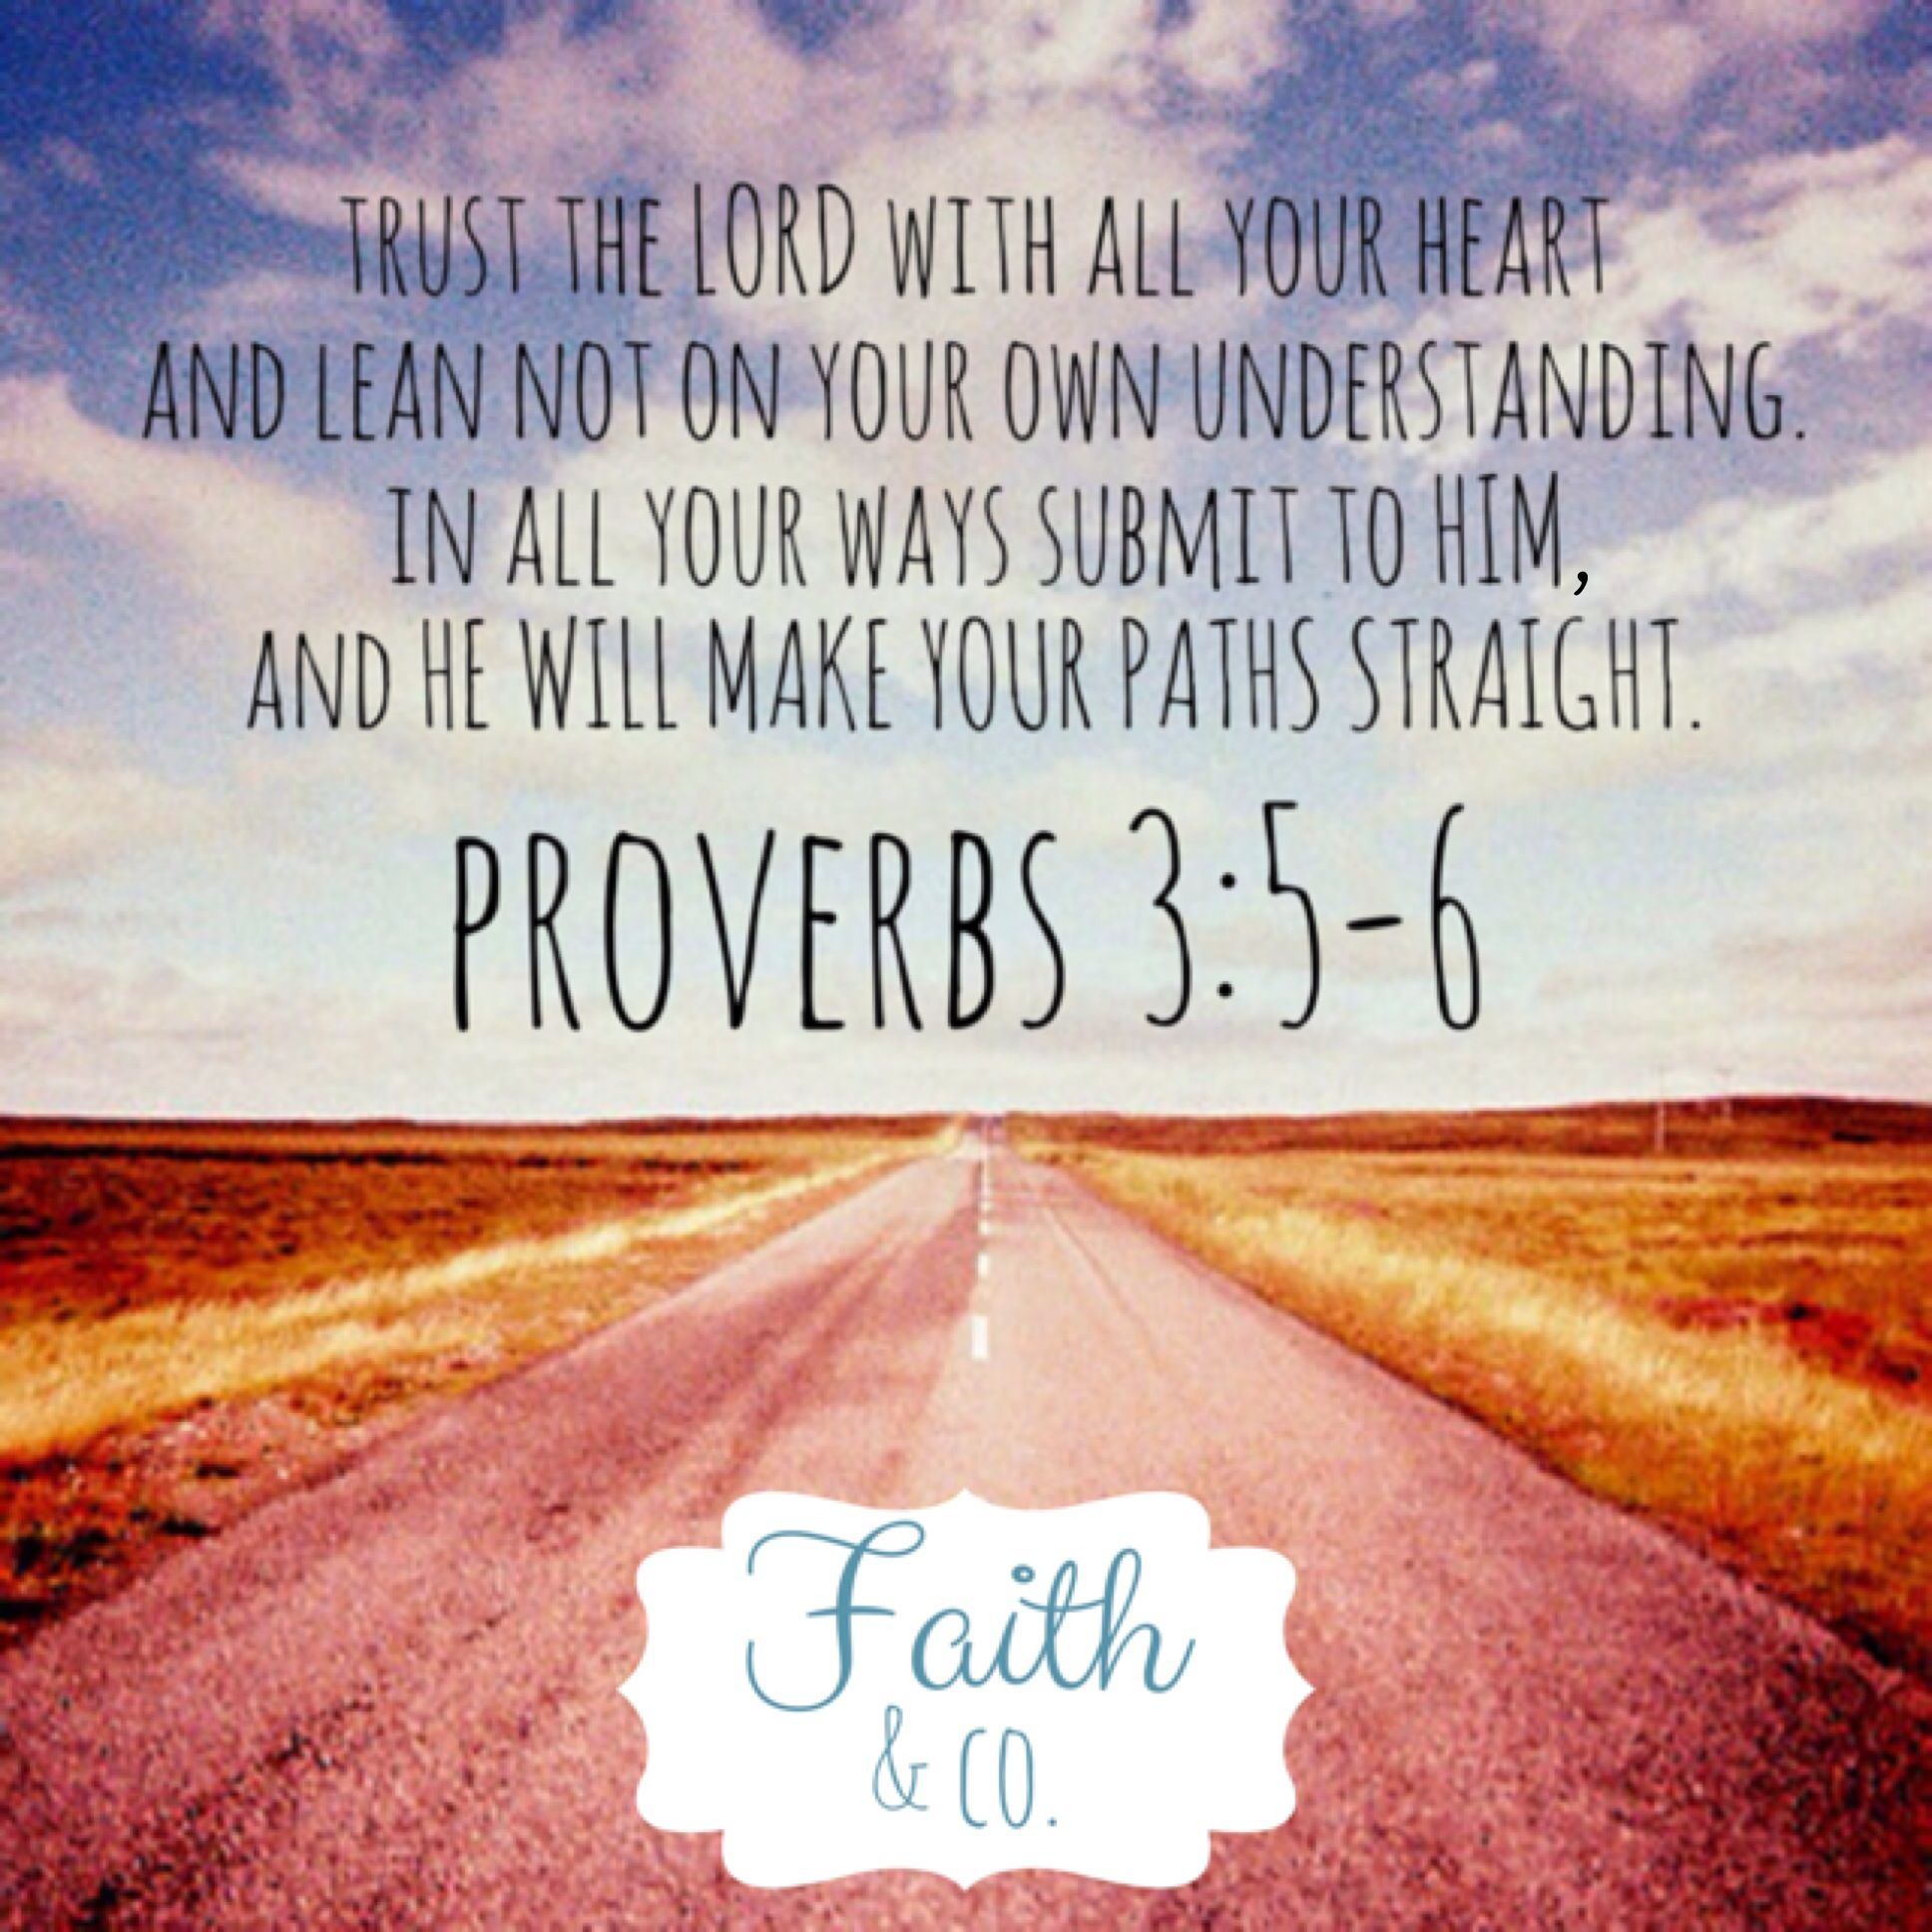 Bible Quotes About Faith Alluring Images For  Bible Verses About Strength And Faith In Hard Times . Design Ideas